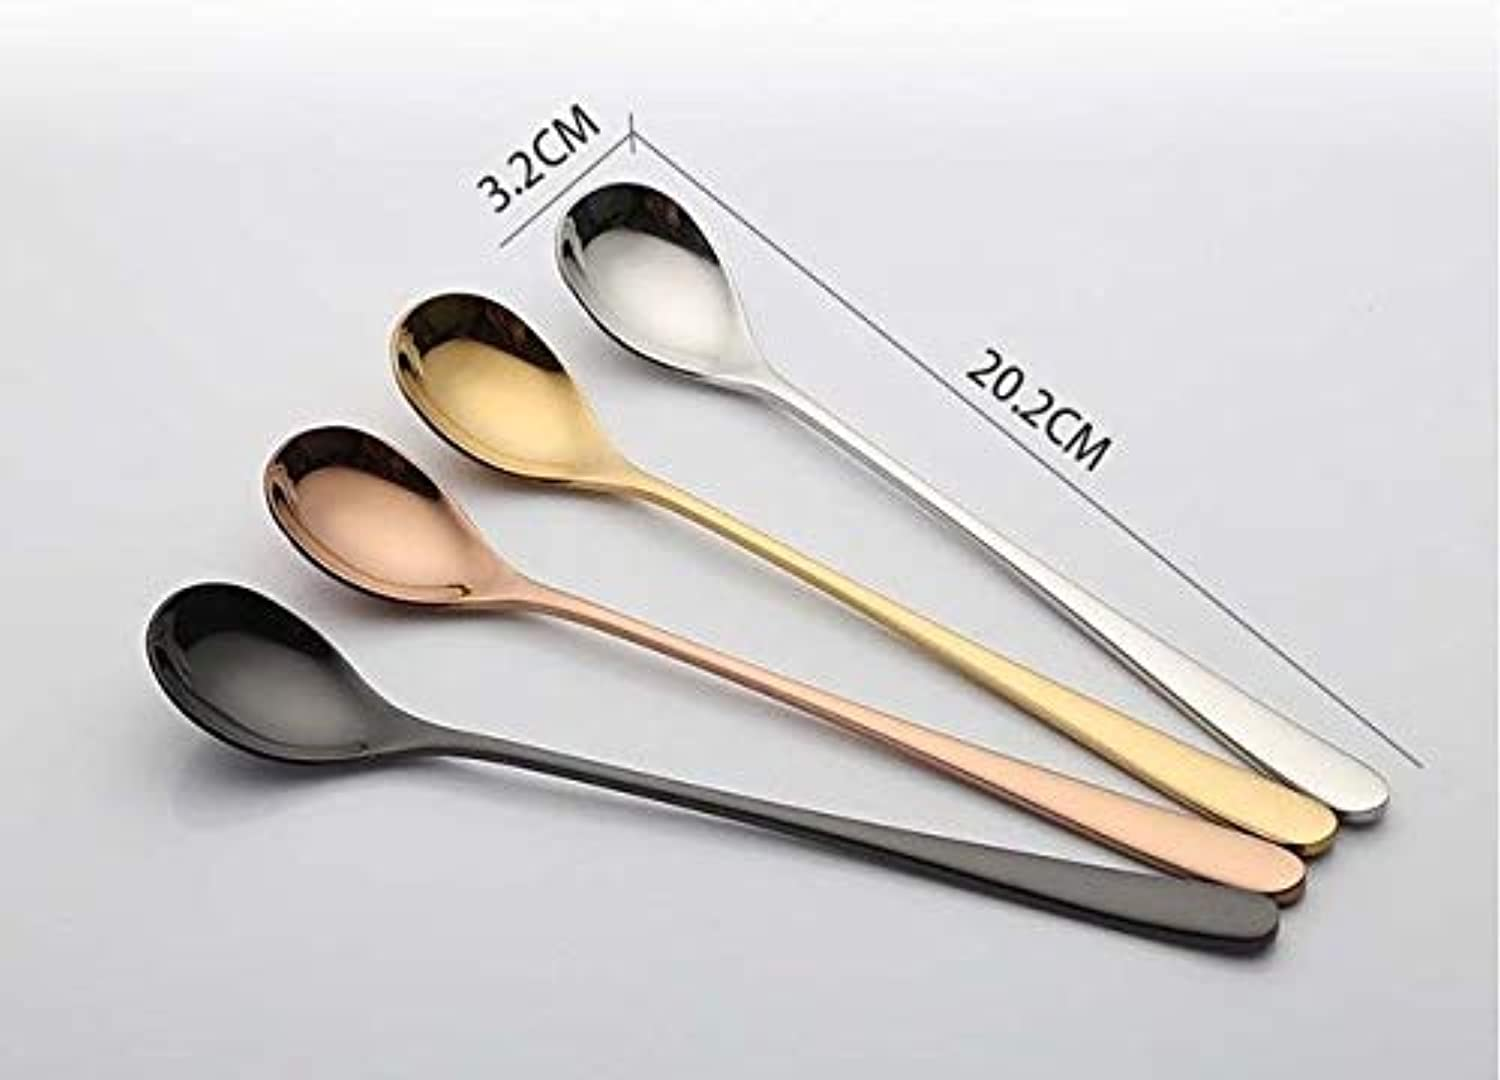 Farmerly 2pc lot Korean Ice Spoon Set Long Handled 18 8 Stainless Steel Luxury golden Dessert Spoons Set for Snack Mixing Scoop Tableware   4mixcolor